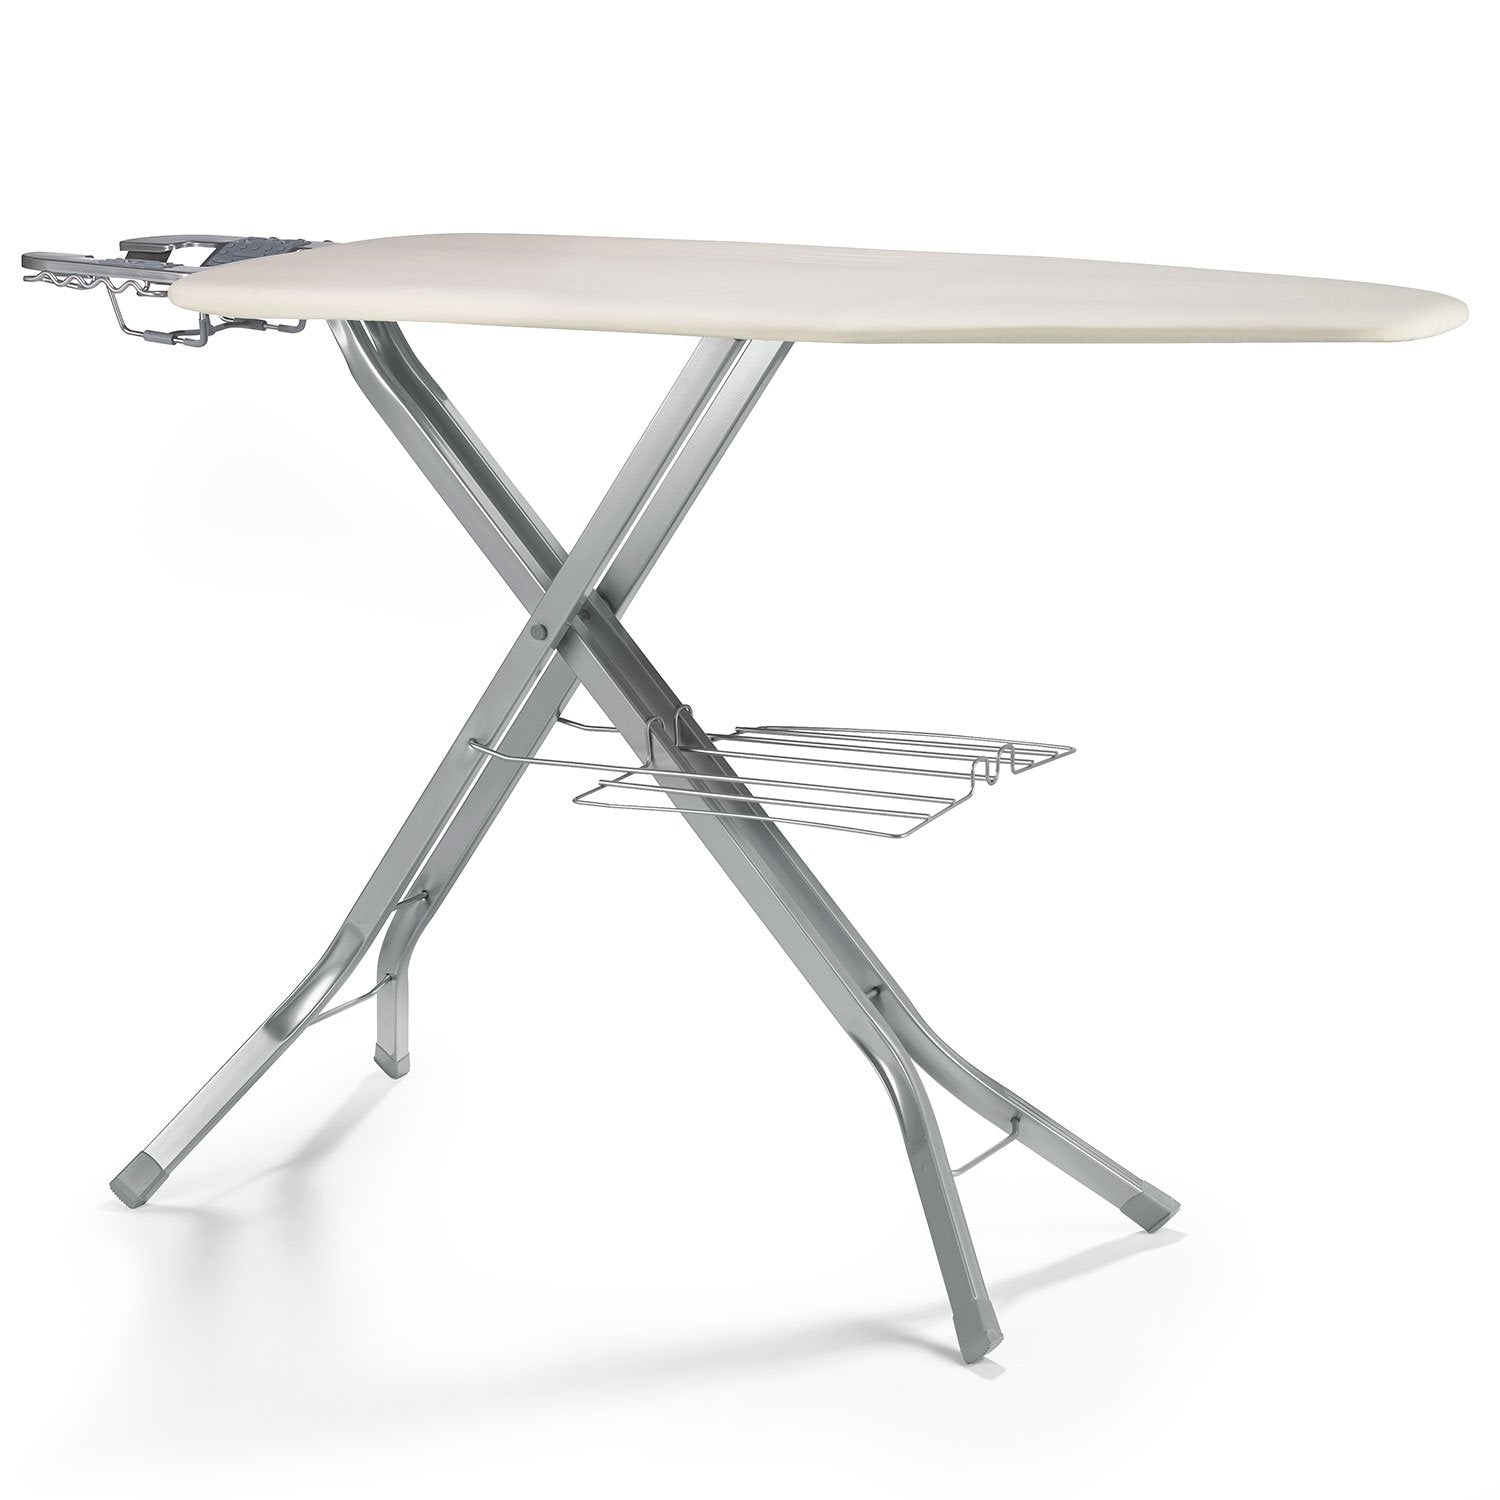 1.3 m x 48.2 cm Ultimate Ironing Station